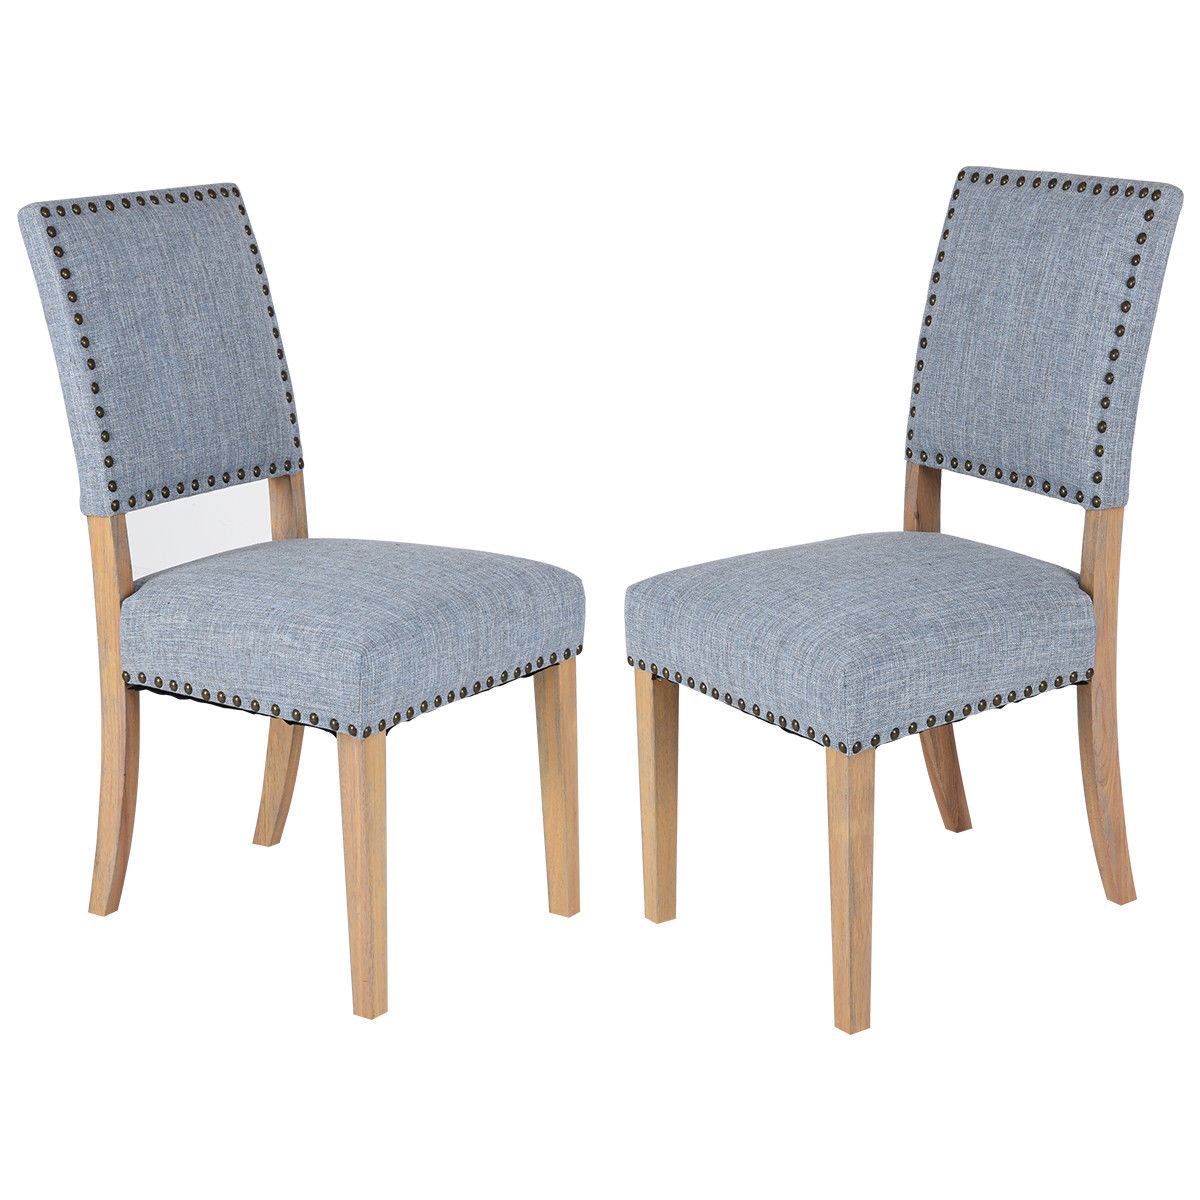 Giantex Set of 2pcs Fabric Dining Chairs with Rubber Wood Legs Home Kitchen Furniture Modern Rivets Leisure Chairs HW56716 цена 2017